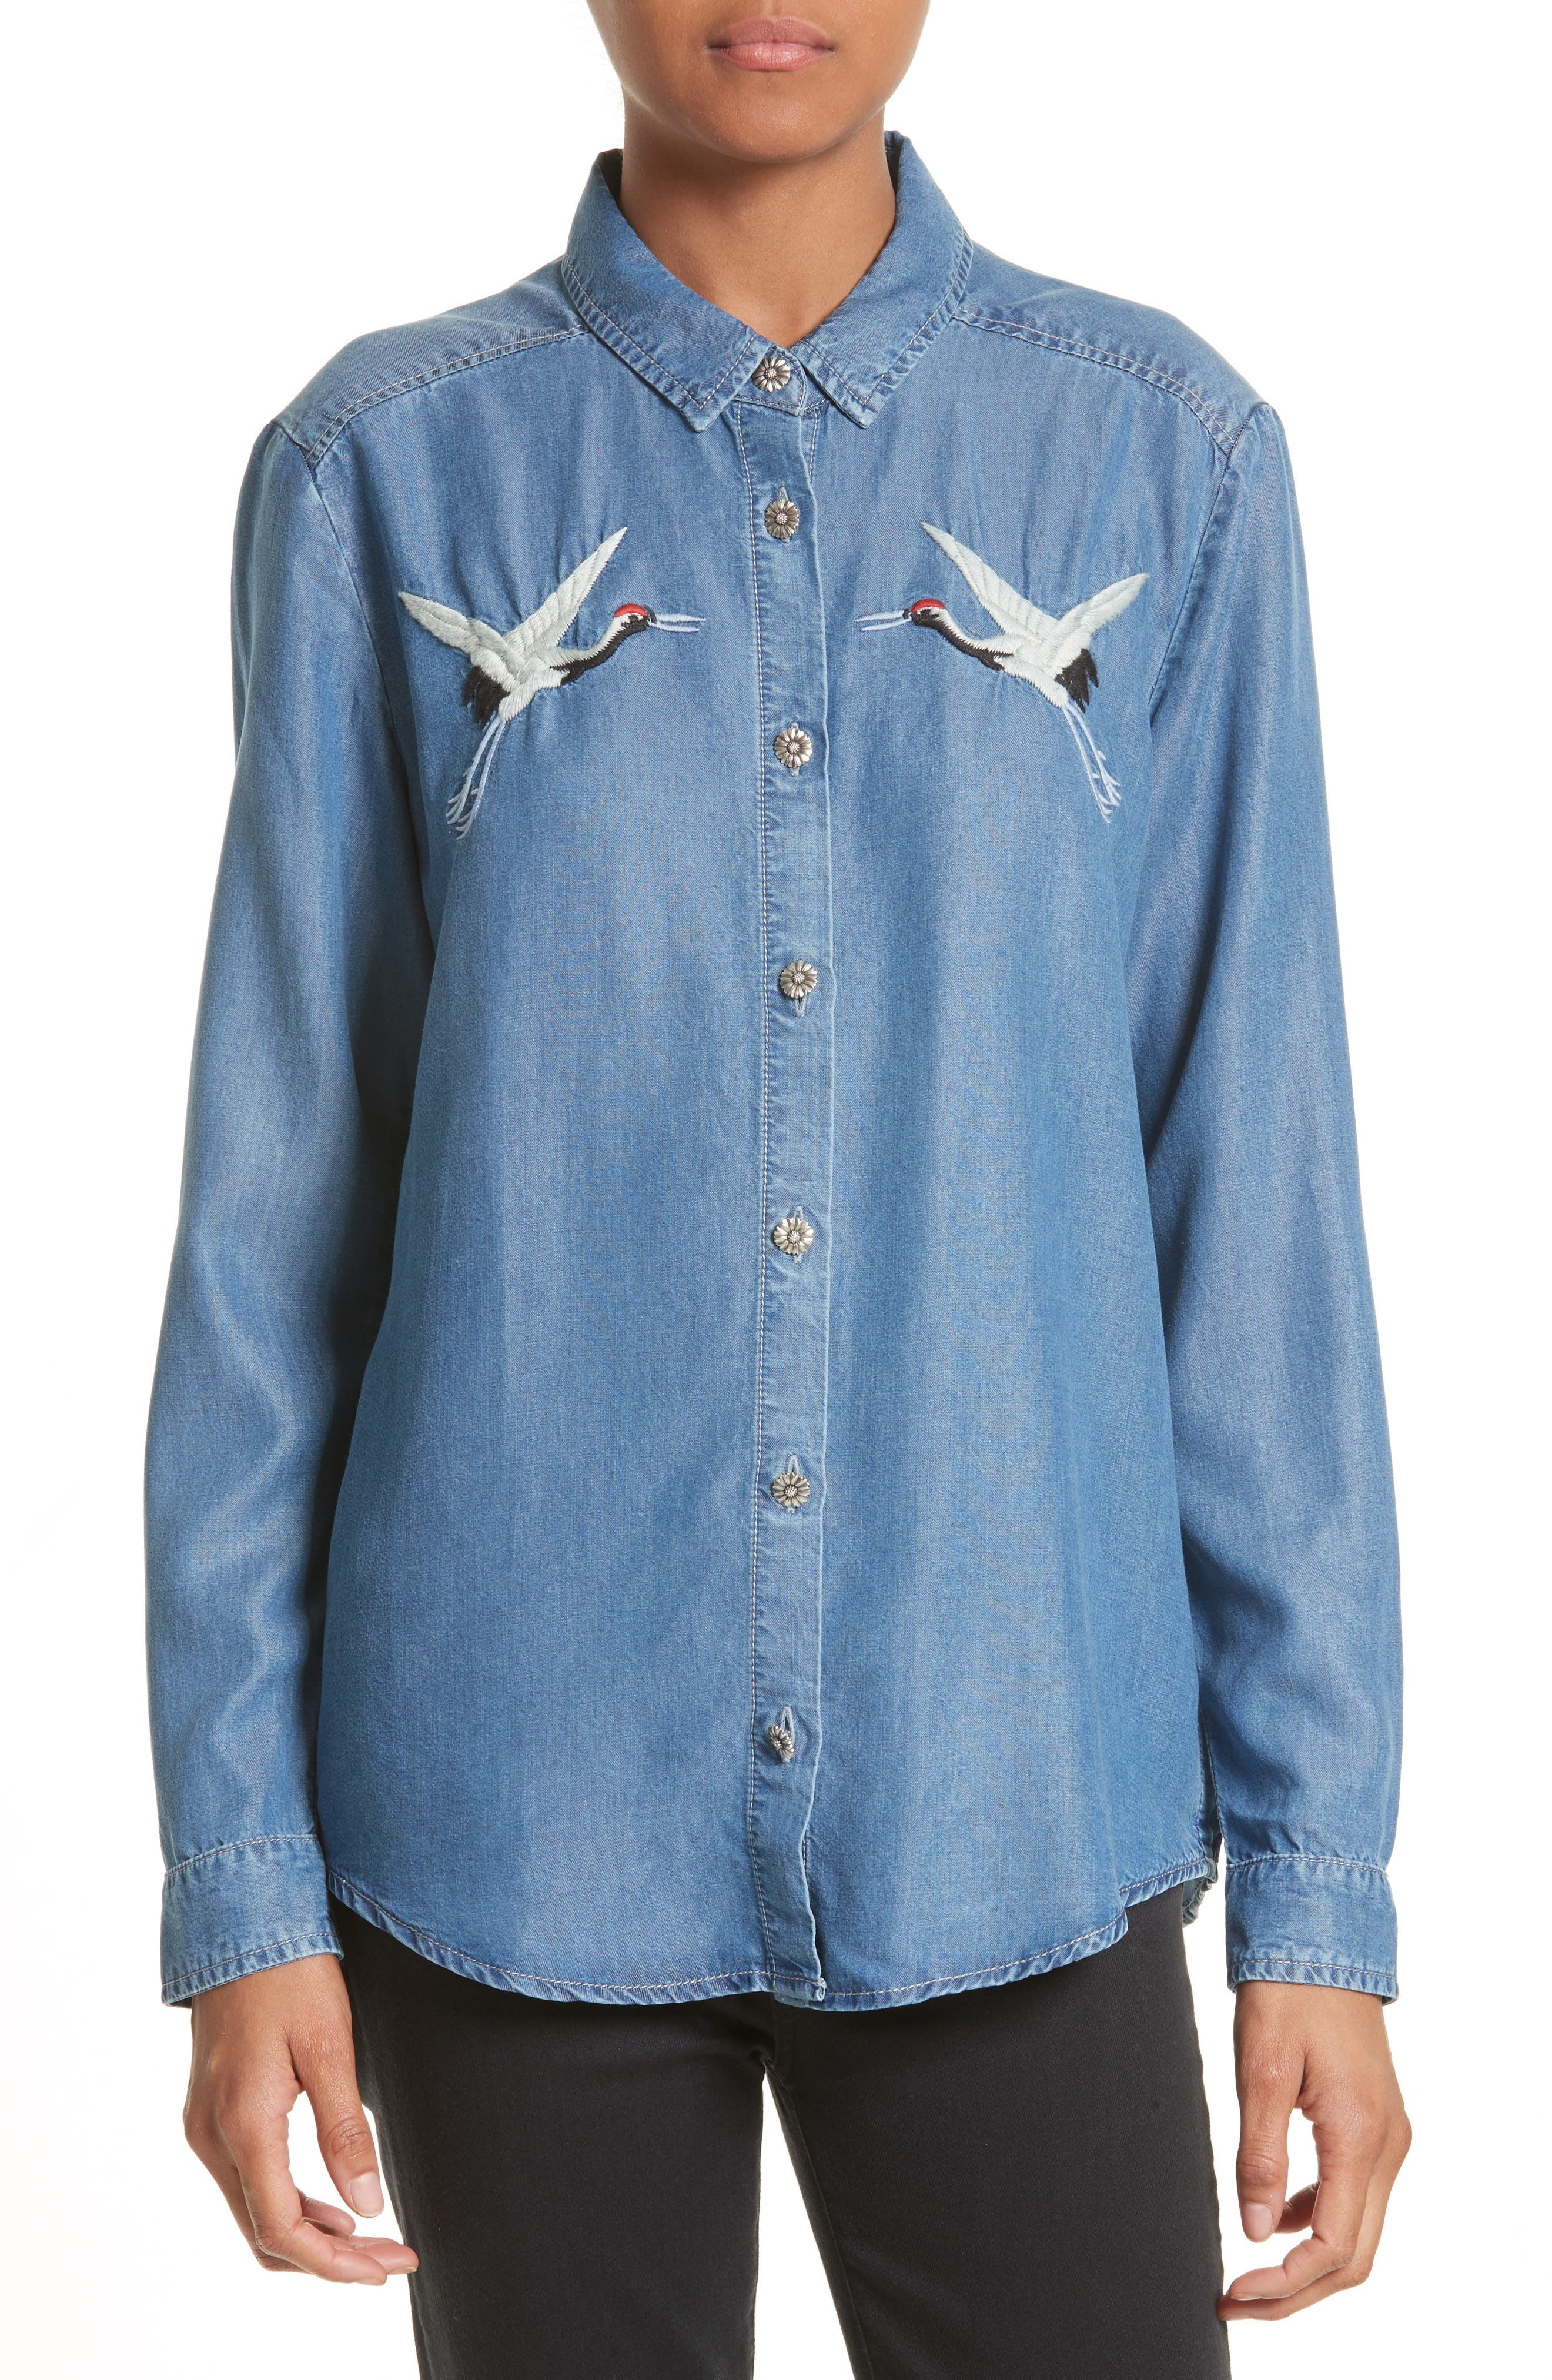 Alternate Image 1 Selected - The Kooples Embroidered Denim Shirt